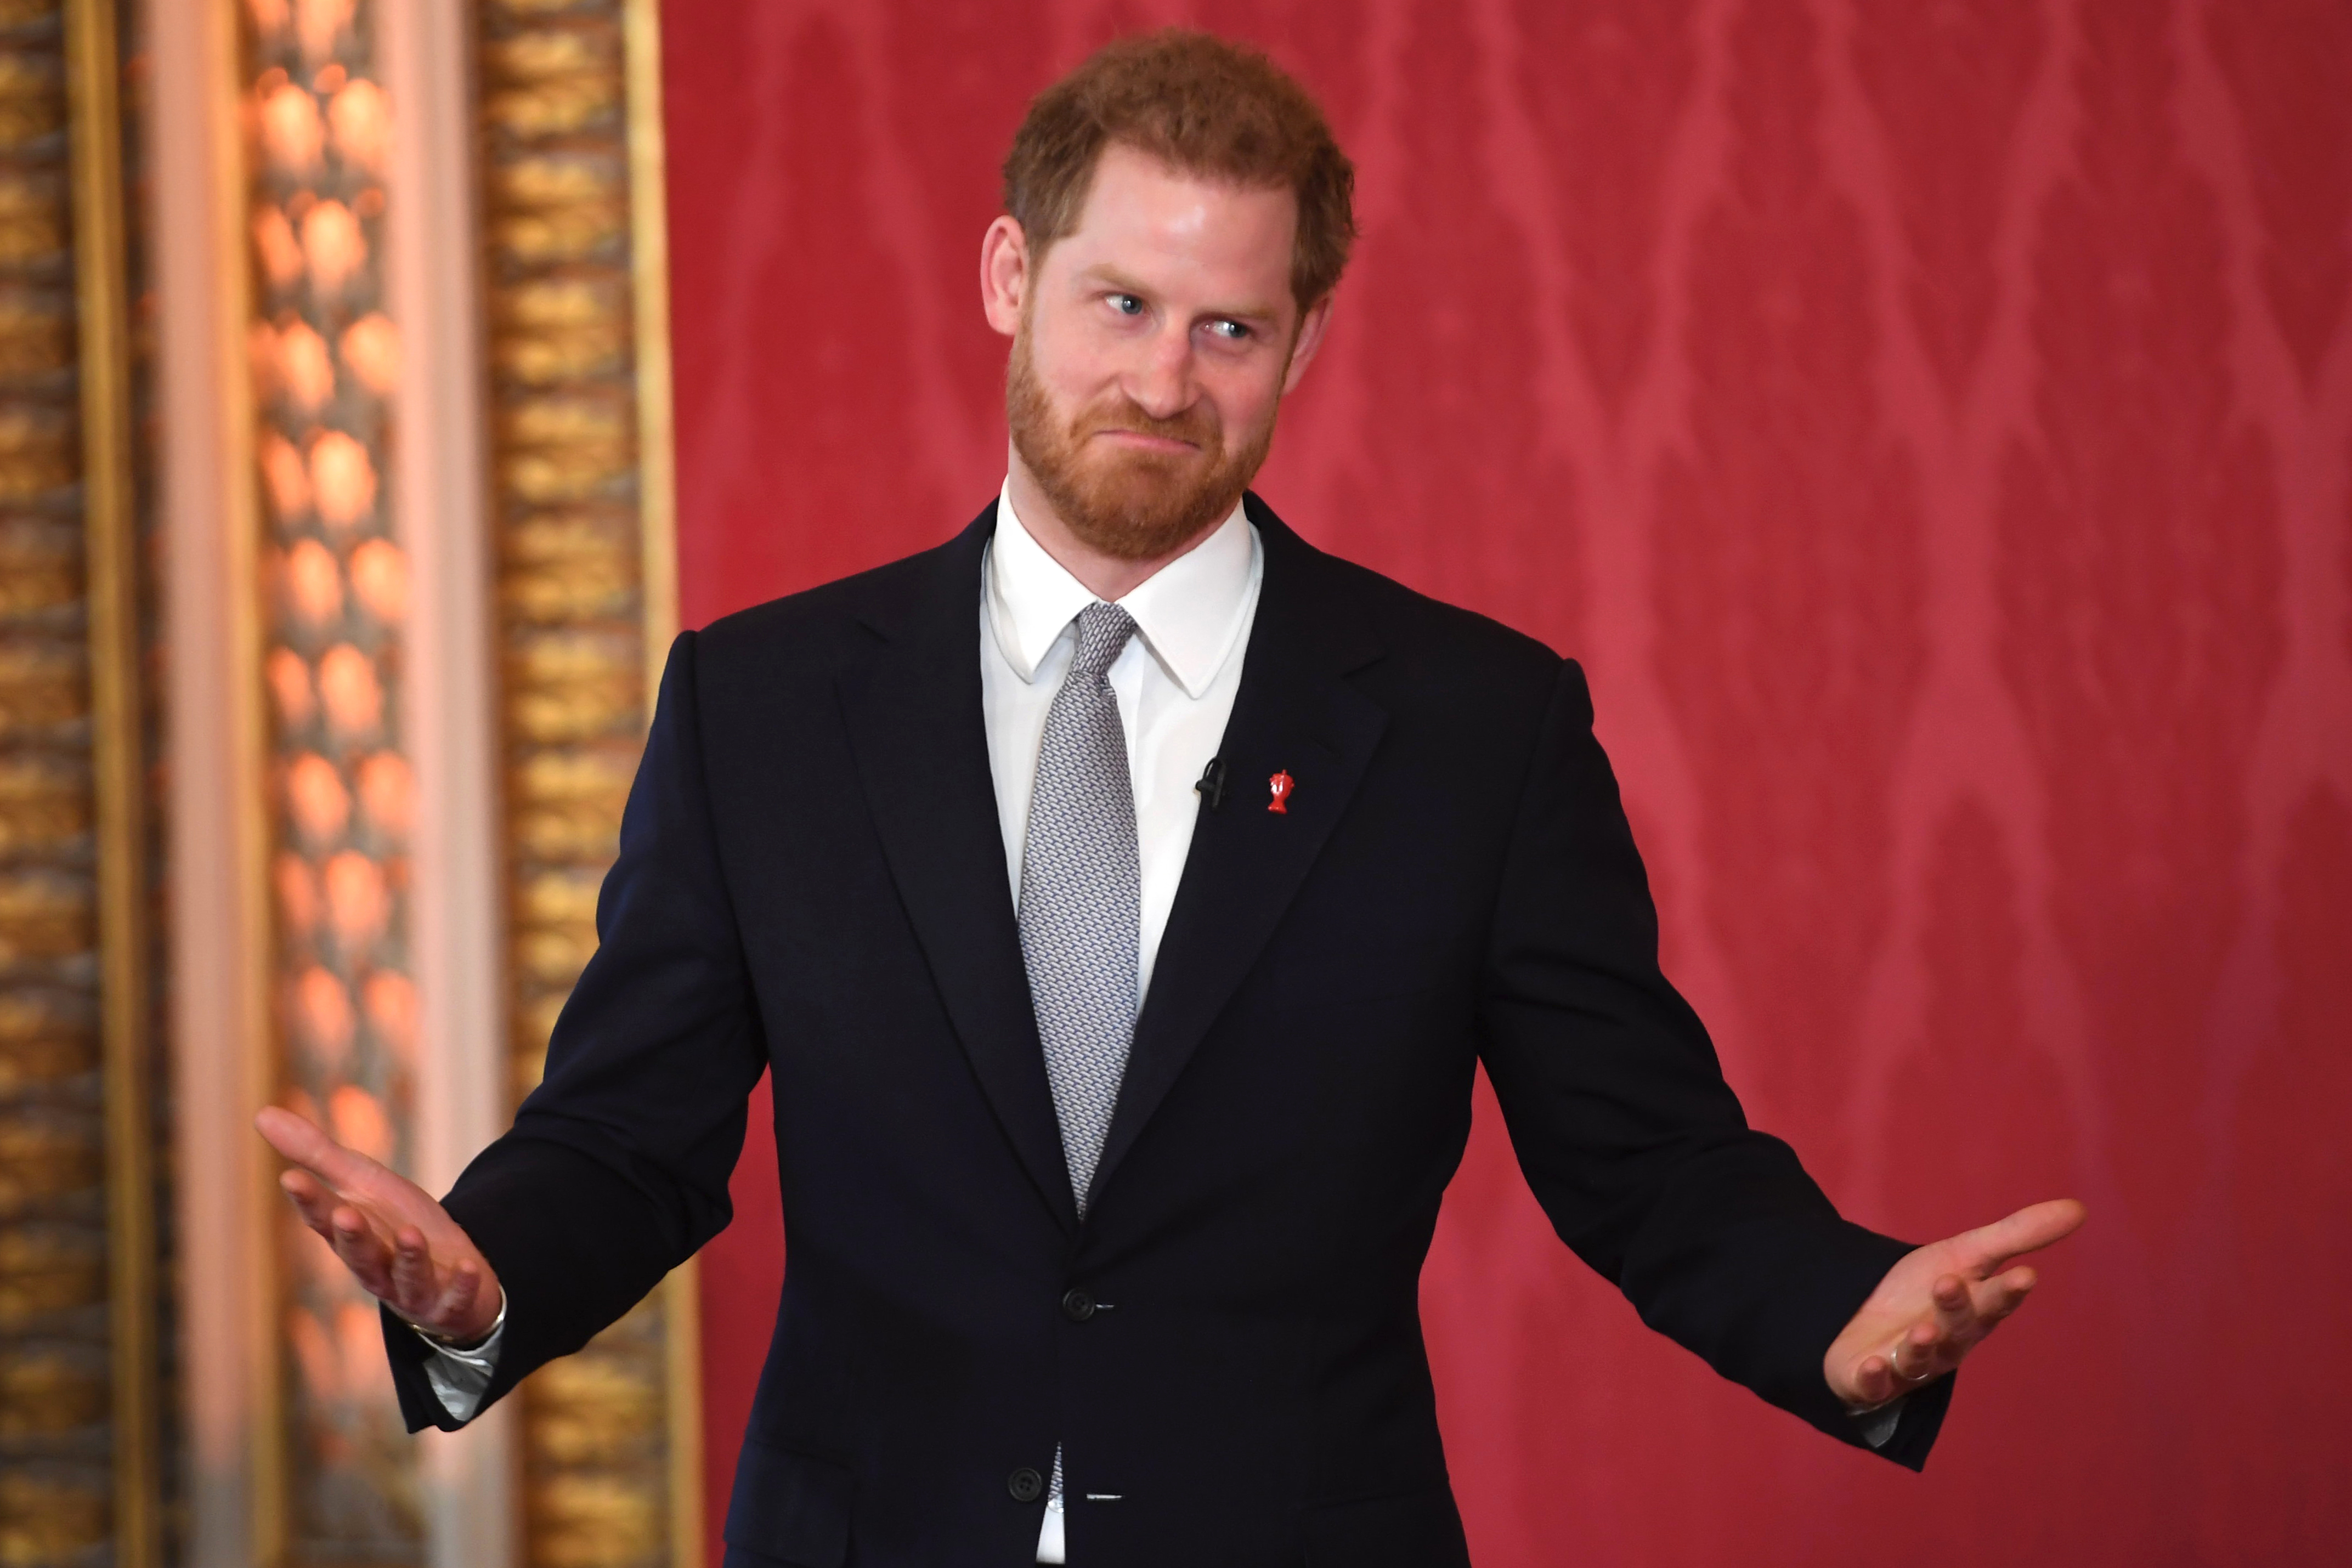 Prince Harry hosts the Rugby League World Cup 2021 draws at Buckingham Palace on Jan. 16, 2020 in London, England.